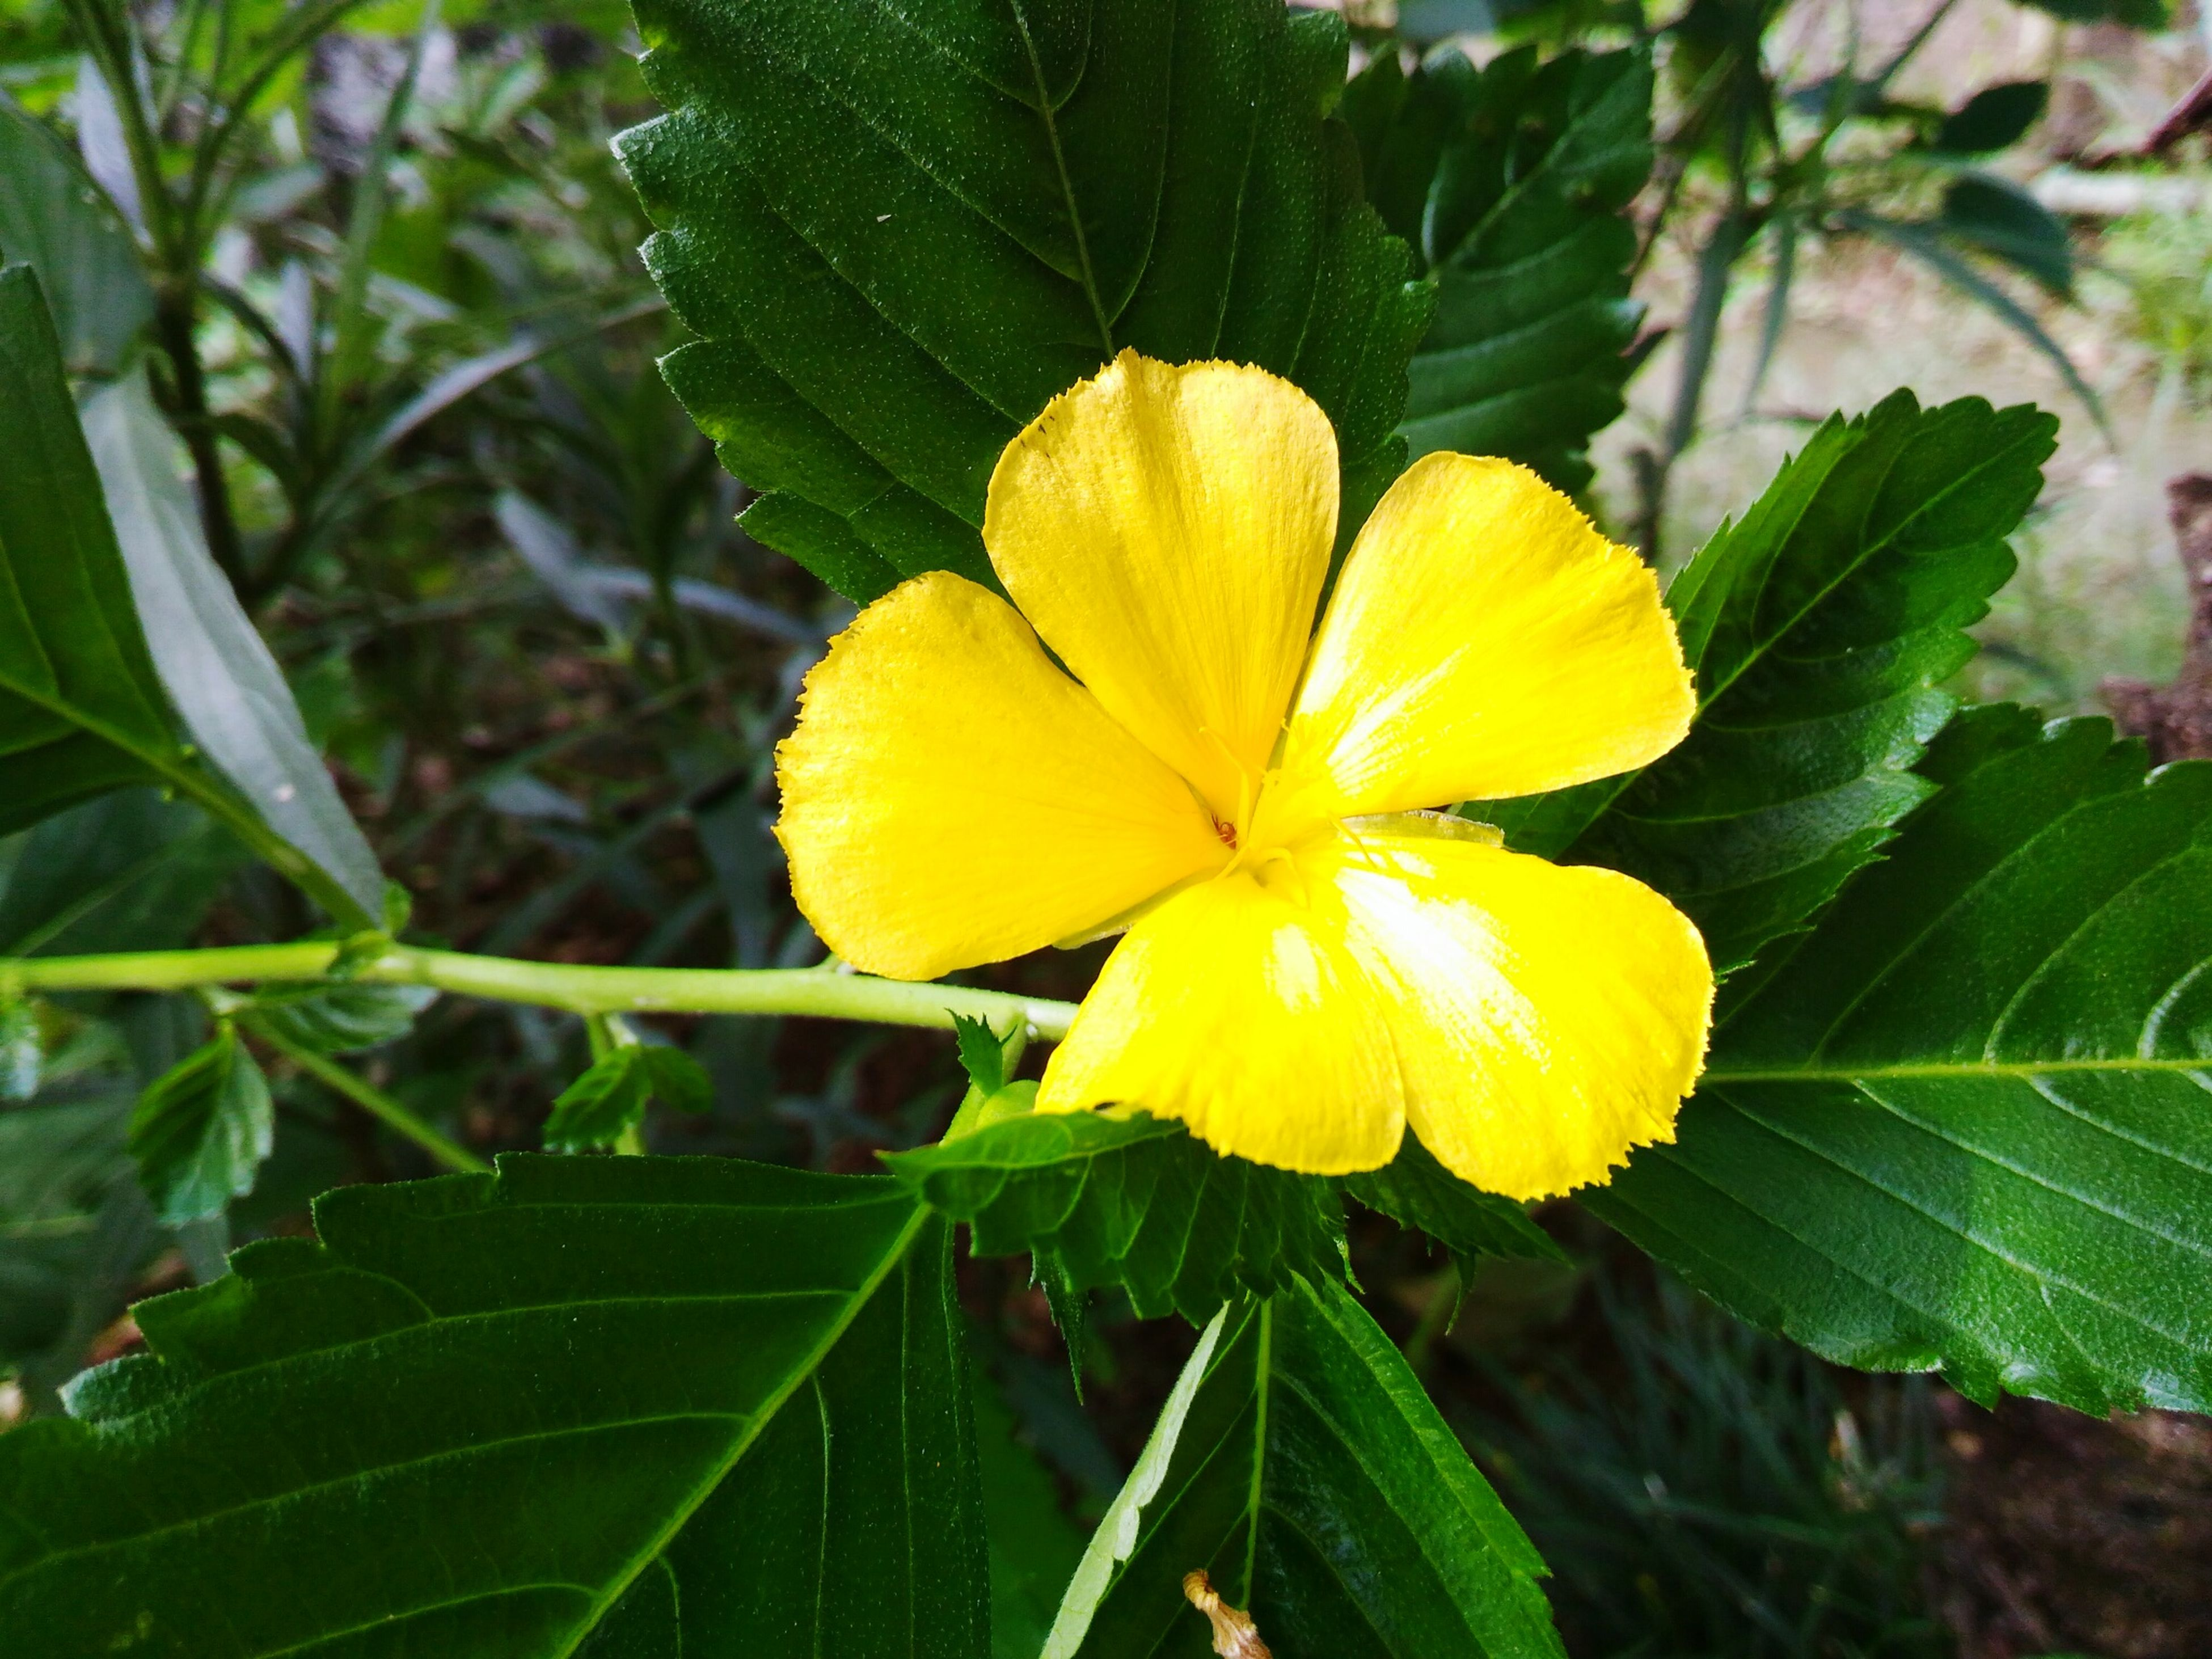 yellow, flower, plant, nature, growth, leaf, fragility, beauty in nature, close-up, freshness, outdoors, blooming, green color, flower head, no people, day